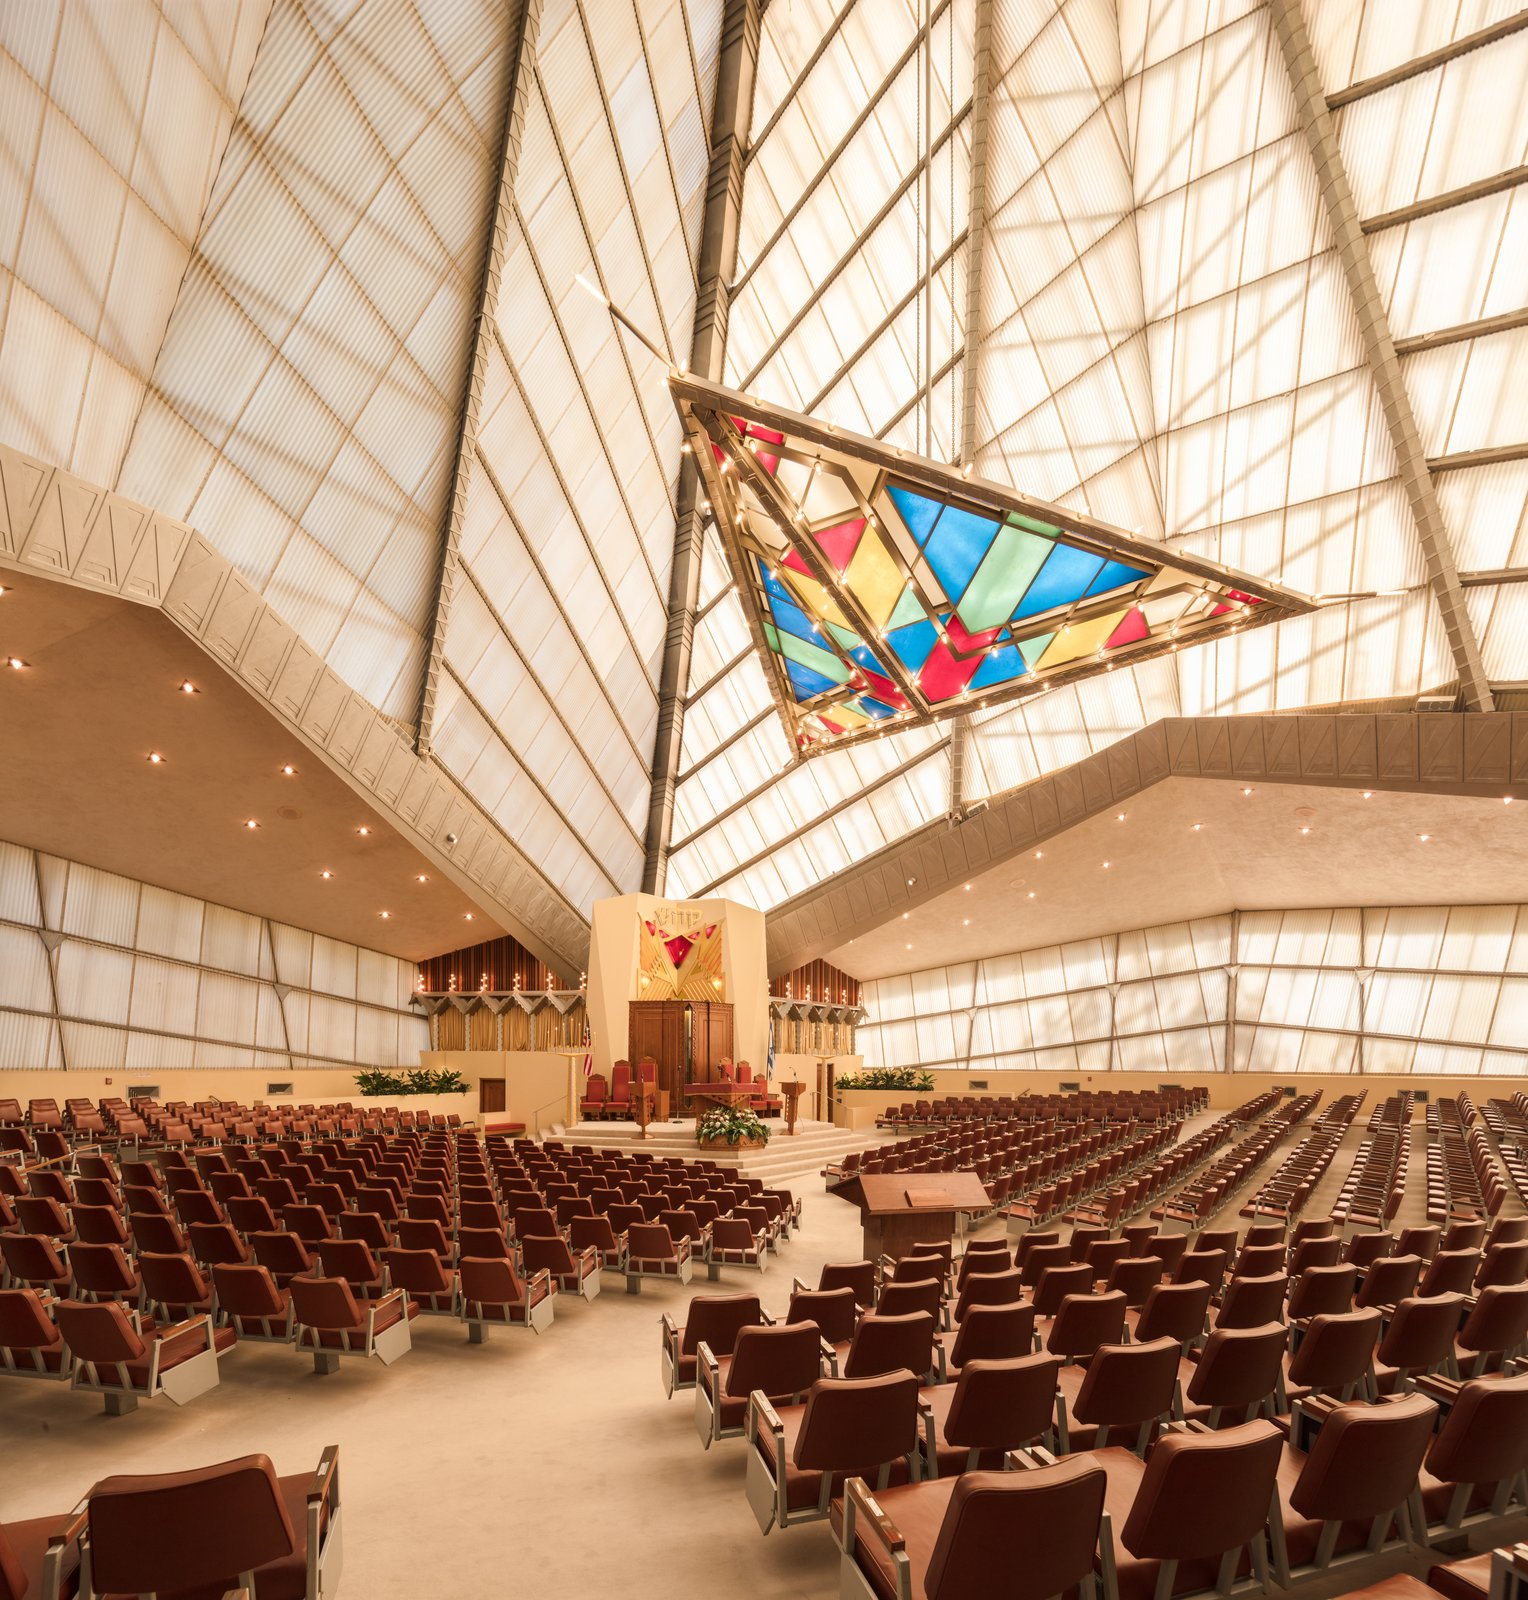 Beth Sholom Synagogue by Frank Lloyd Wright